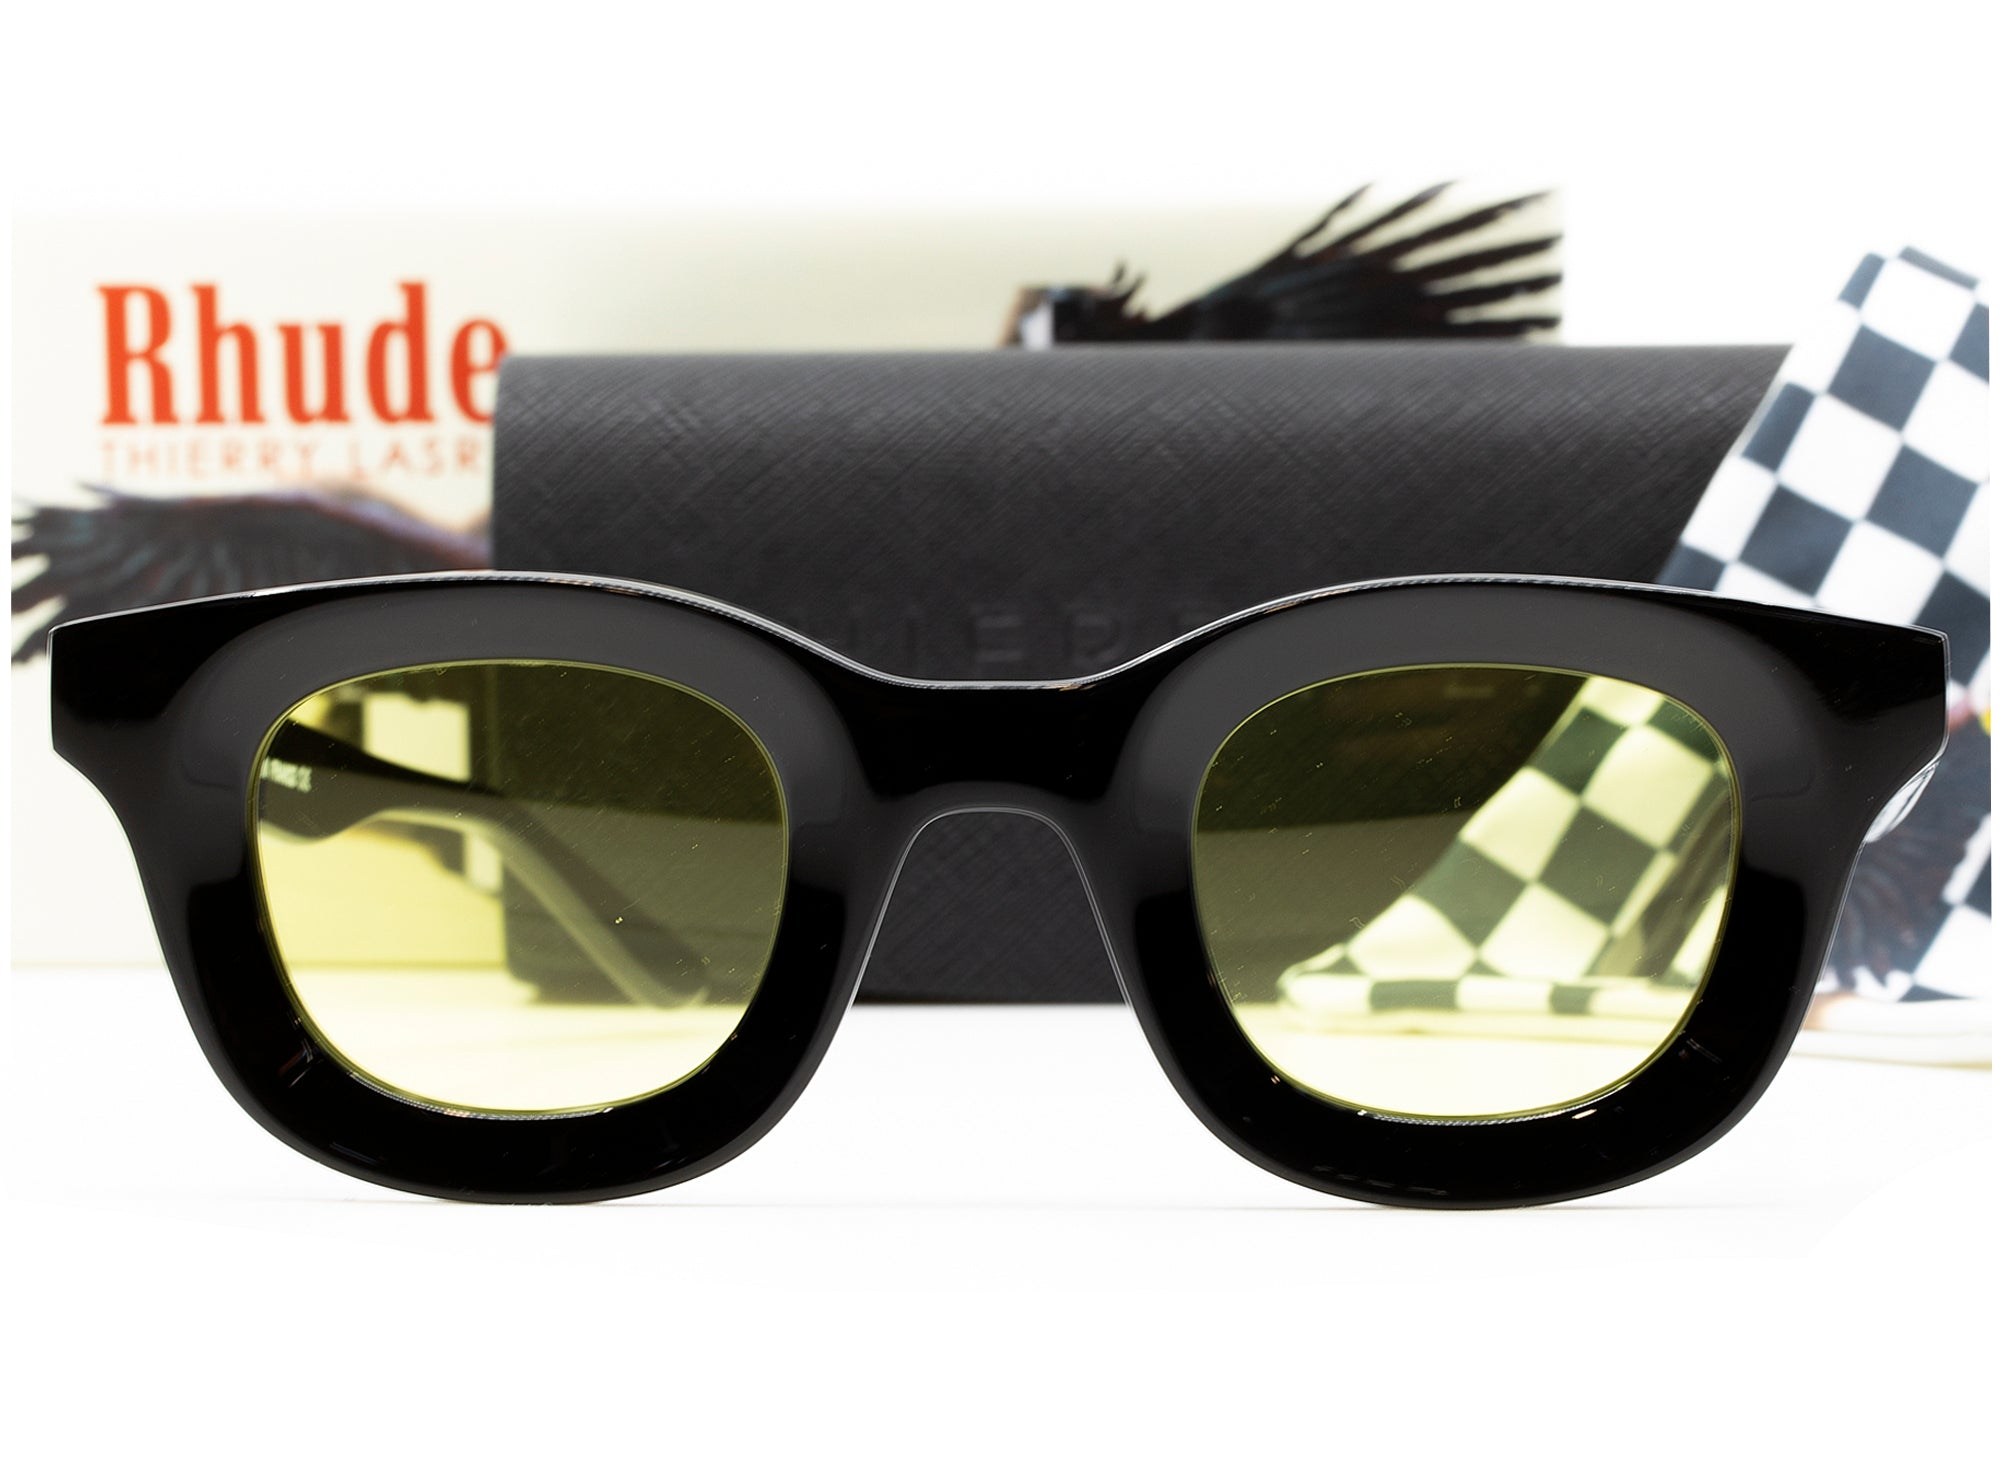 Rhude x Thierry Lasry Rhodeo Glasses xld